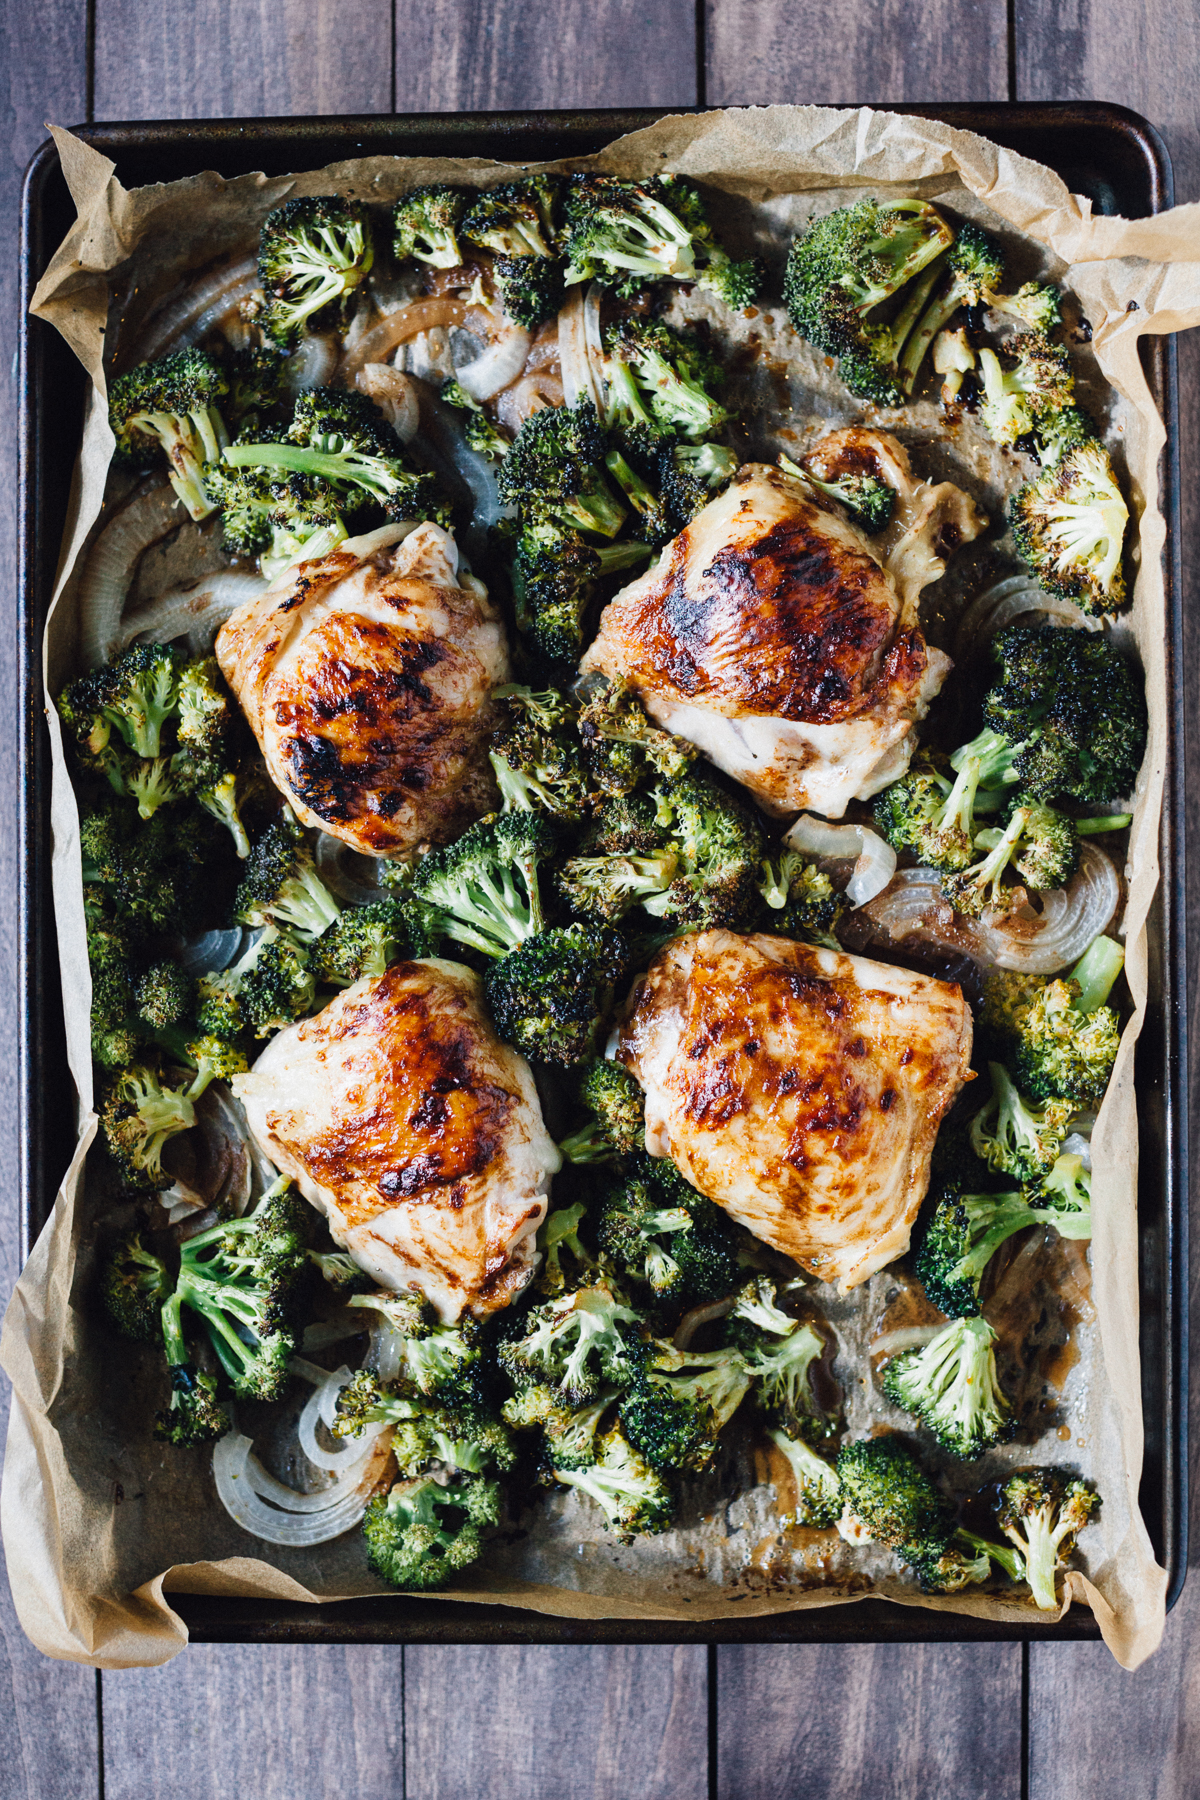 Sheet Pan Dinner: Balsamic Chicken Thighs with Roasted Broccoli | Alyssa & Carla